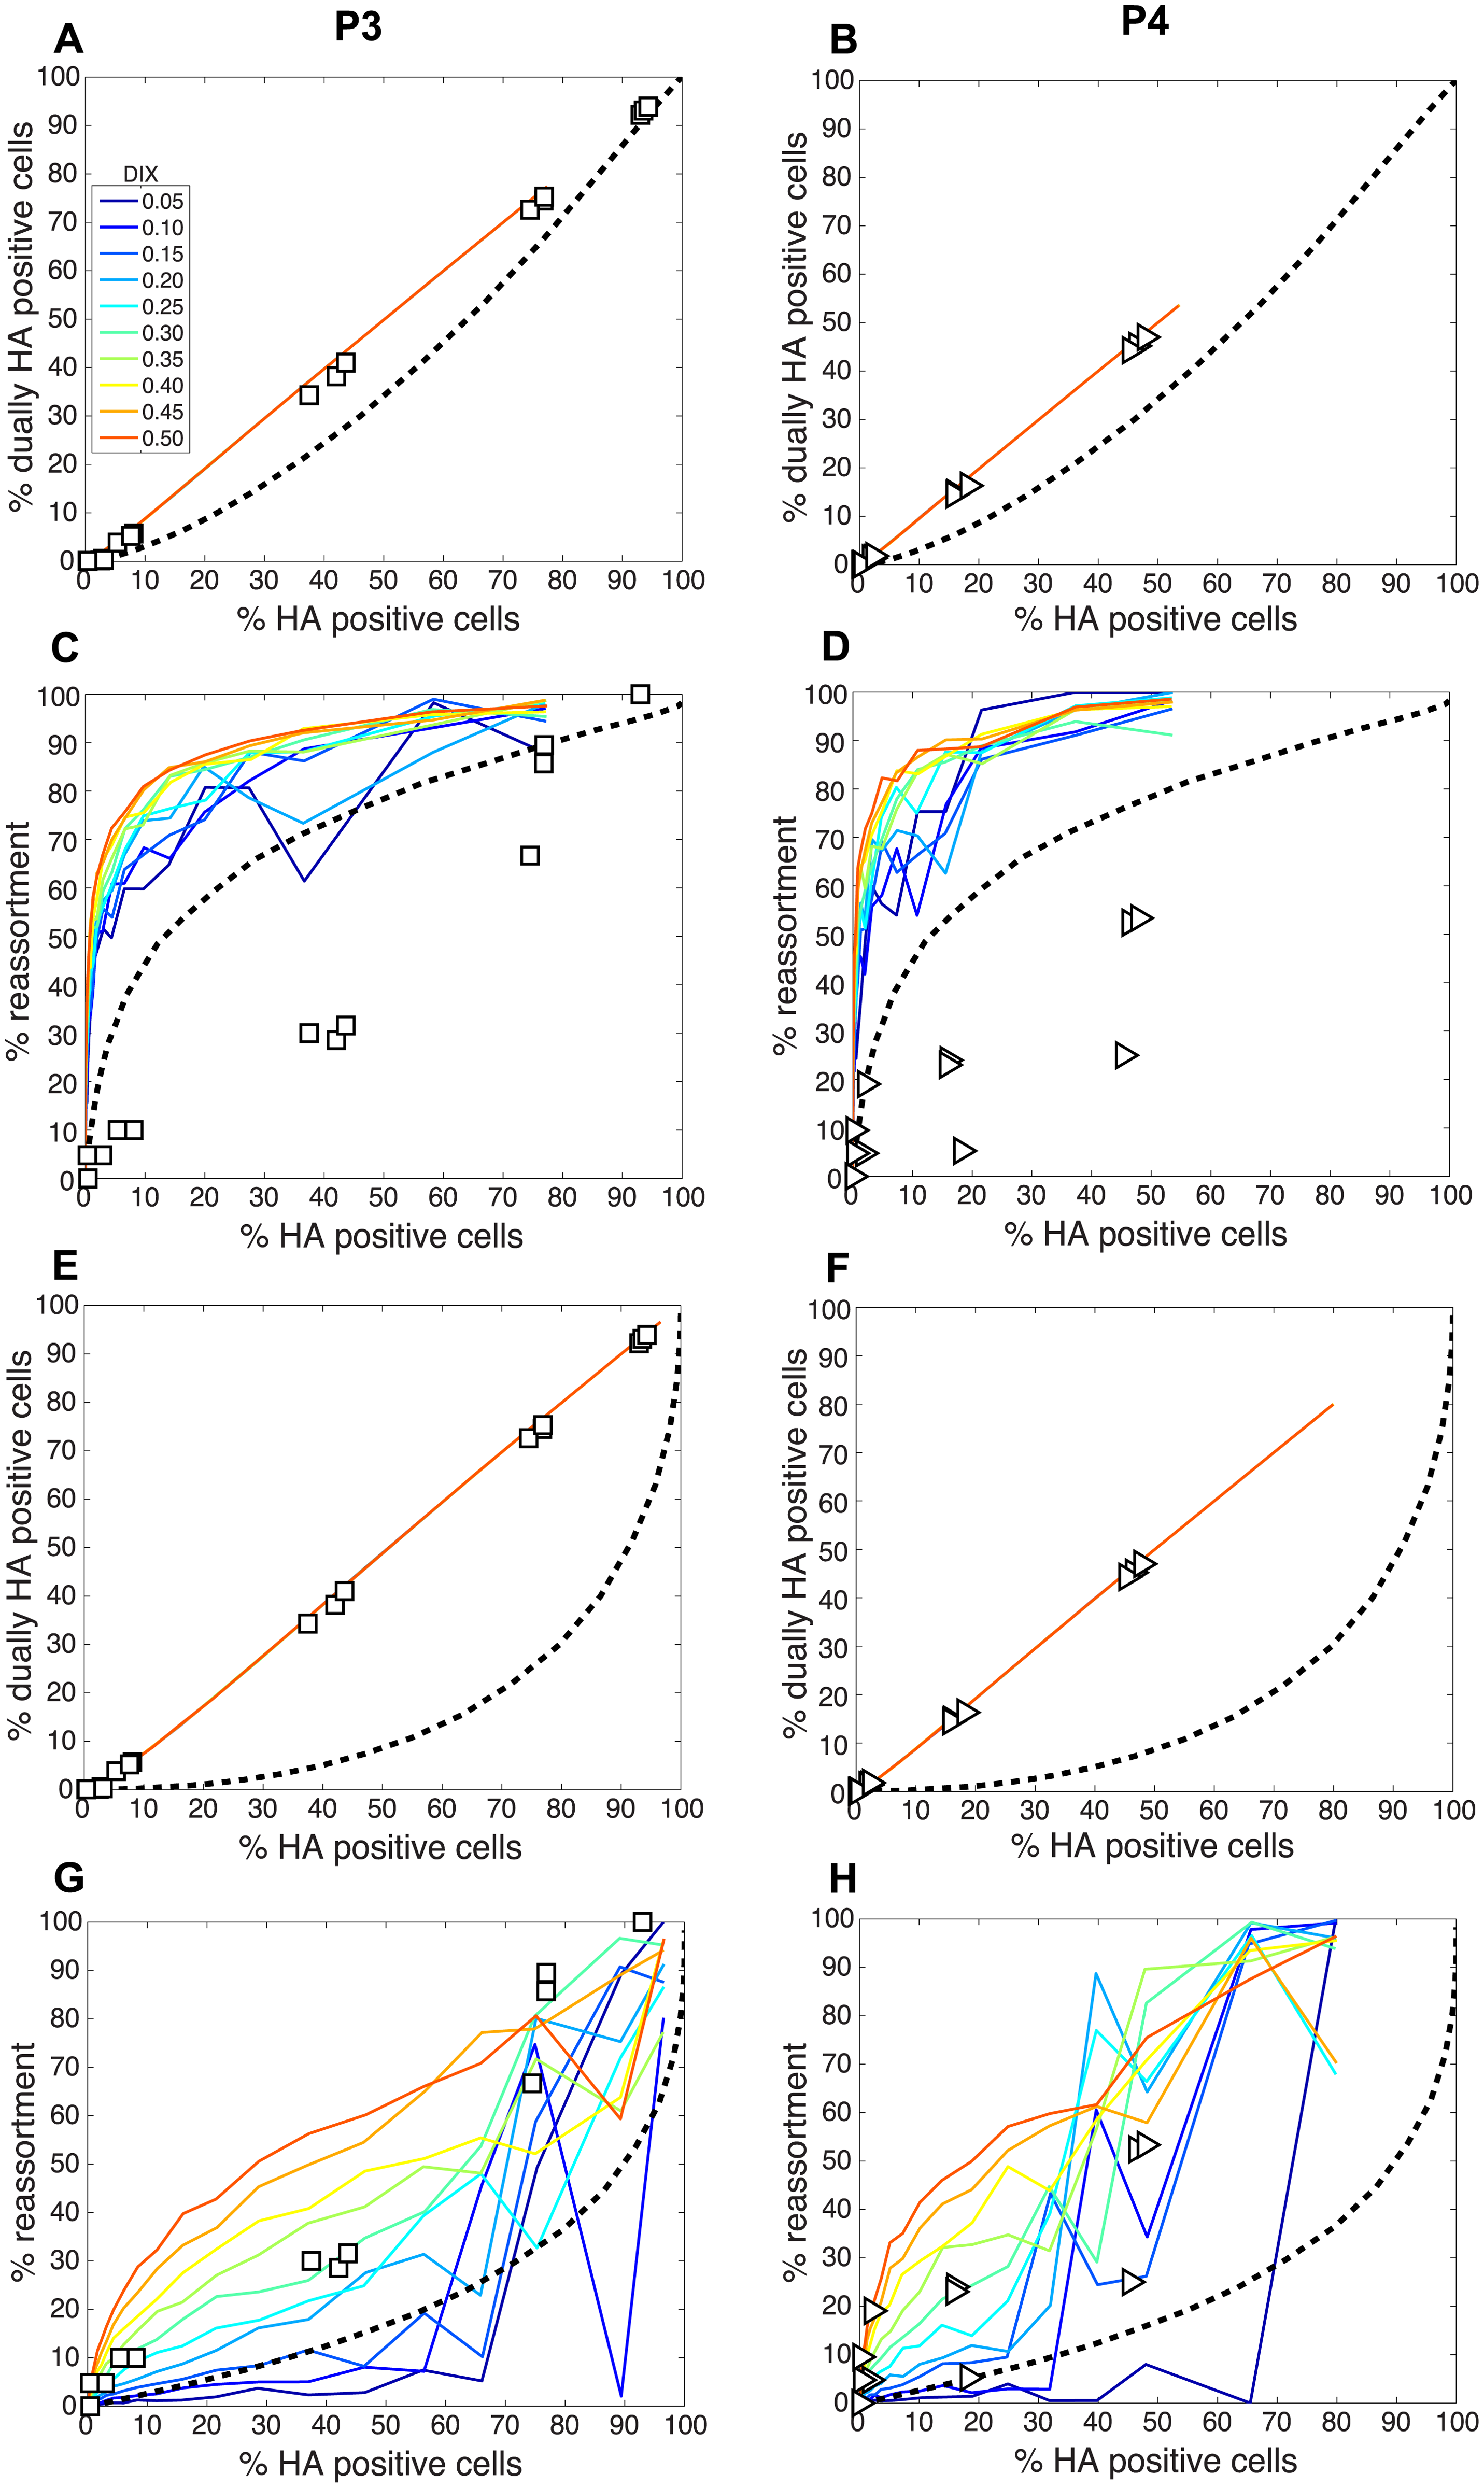 Comparison of modeled and experimentally determined relationships among % HA positive cells, % dually HA positive cells and % reassortment in the presence of DI particles.